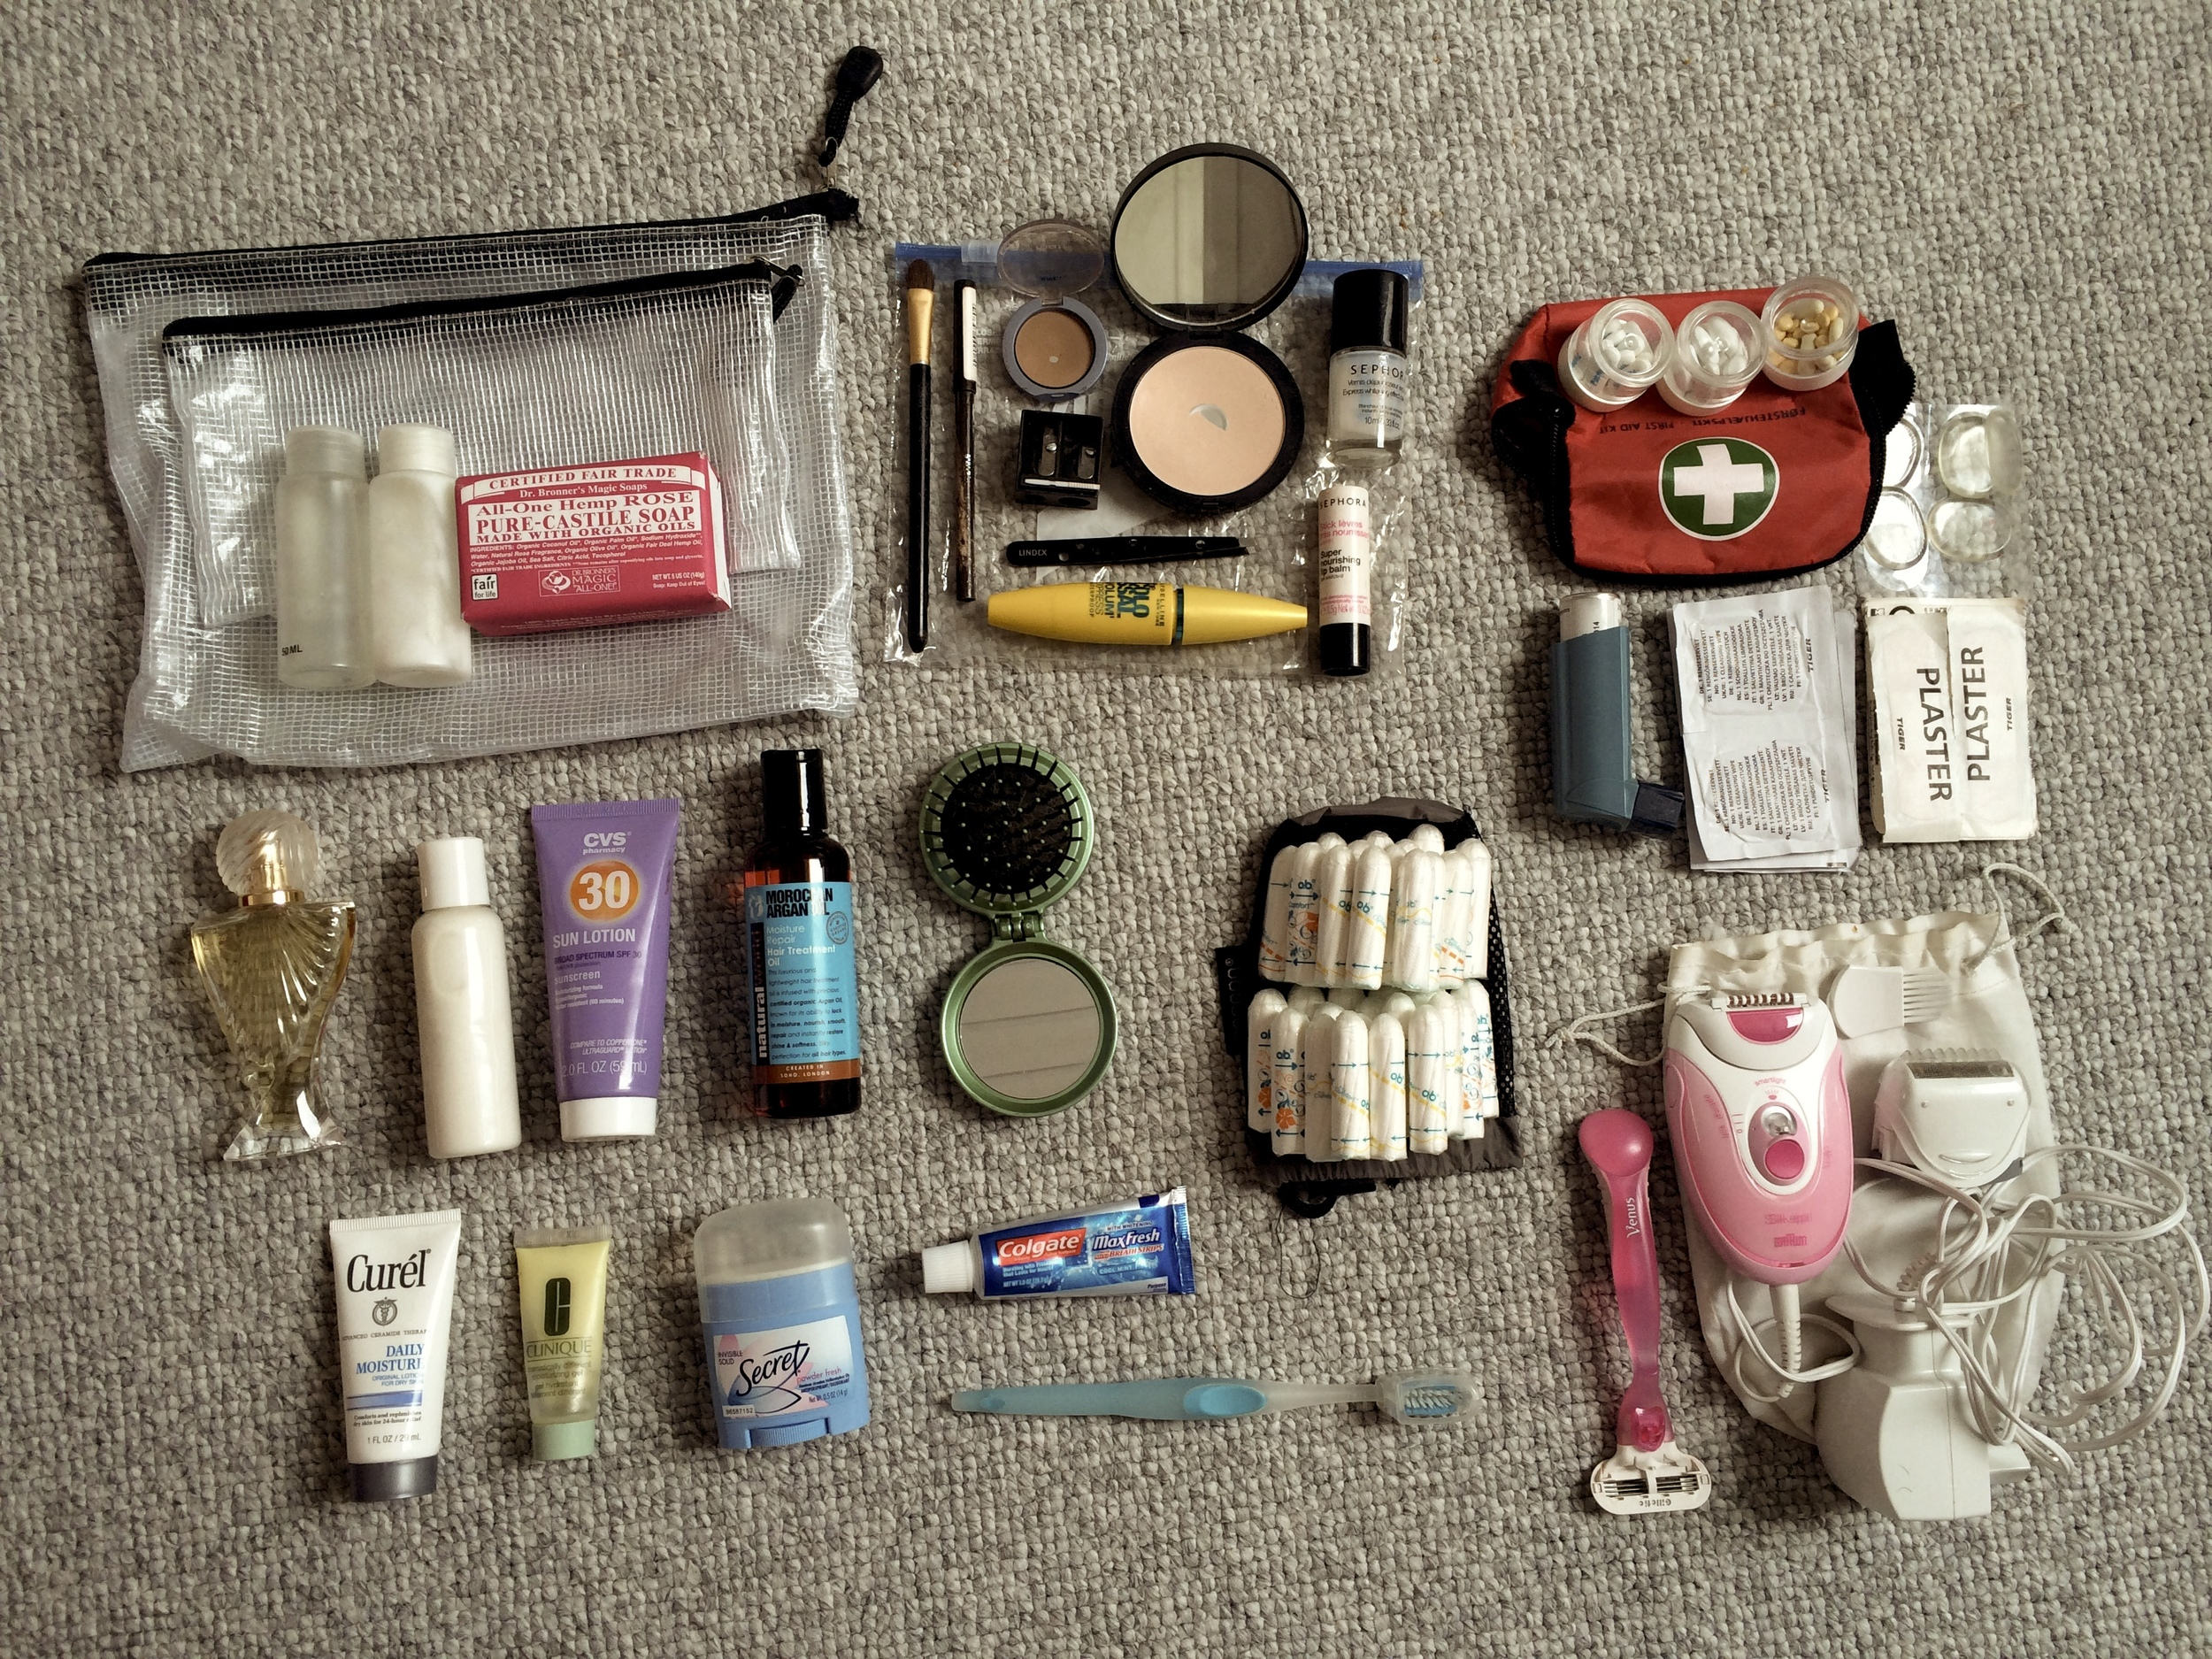 toiletries light travel packing backpacking carry on luggage